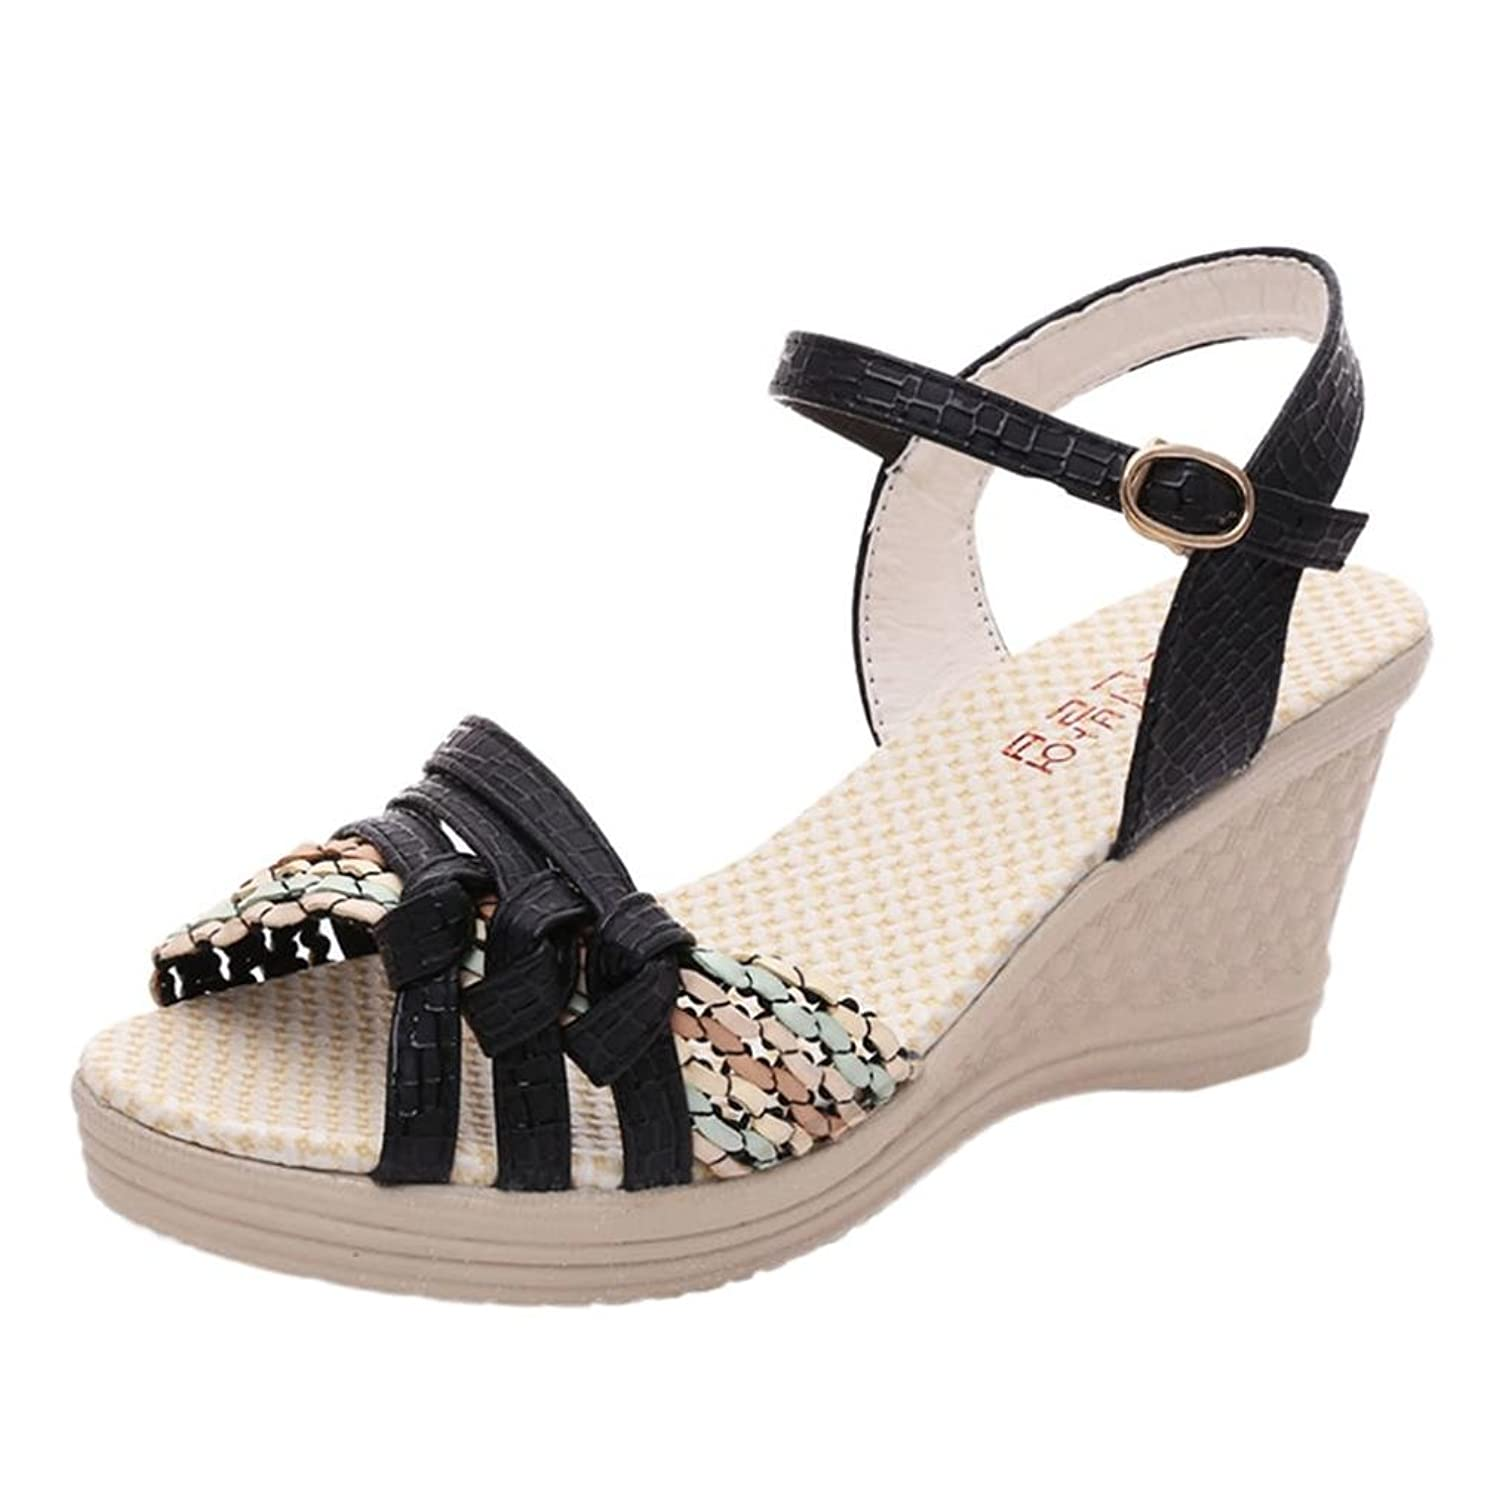 e65c99e48b ❦❦❦Material:Artificial PU---Women's Flip Flop Gladiator Flat Sandal  Fisherman Sandal Women\'s Elastic Flat Sandals Light Weight Adjustable  Outdoor Water ...